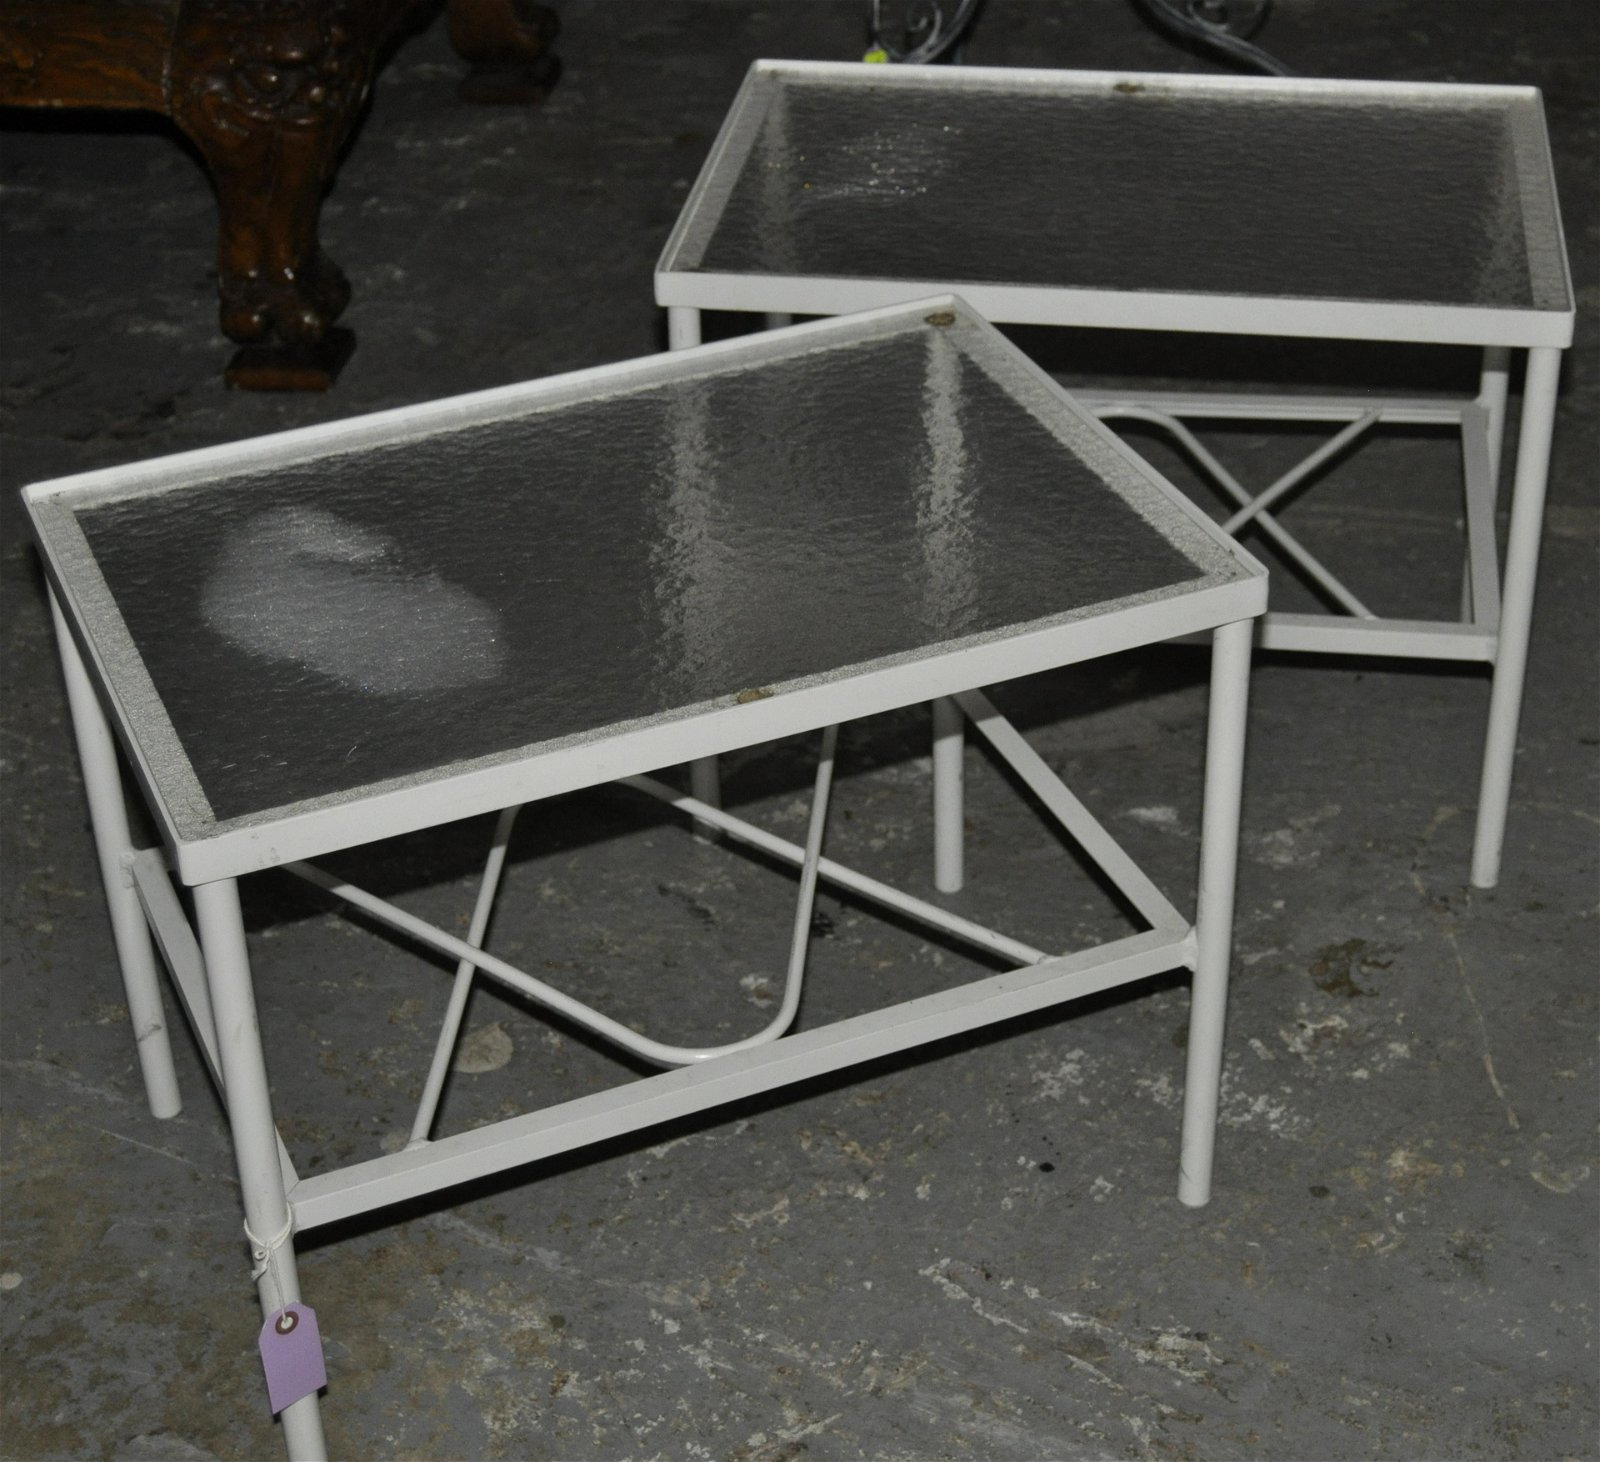 A Pair of Welded Aluminum Patio tables